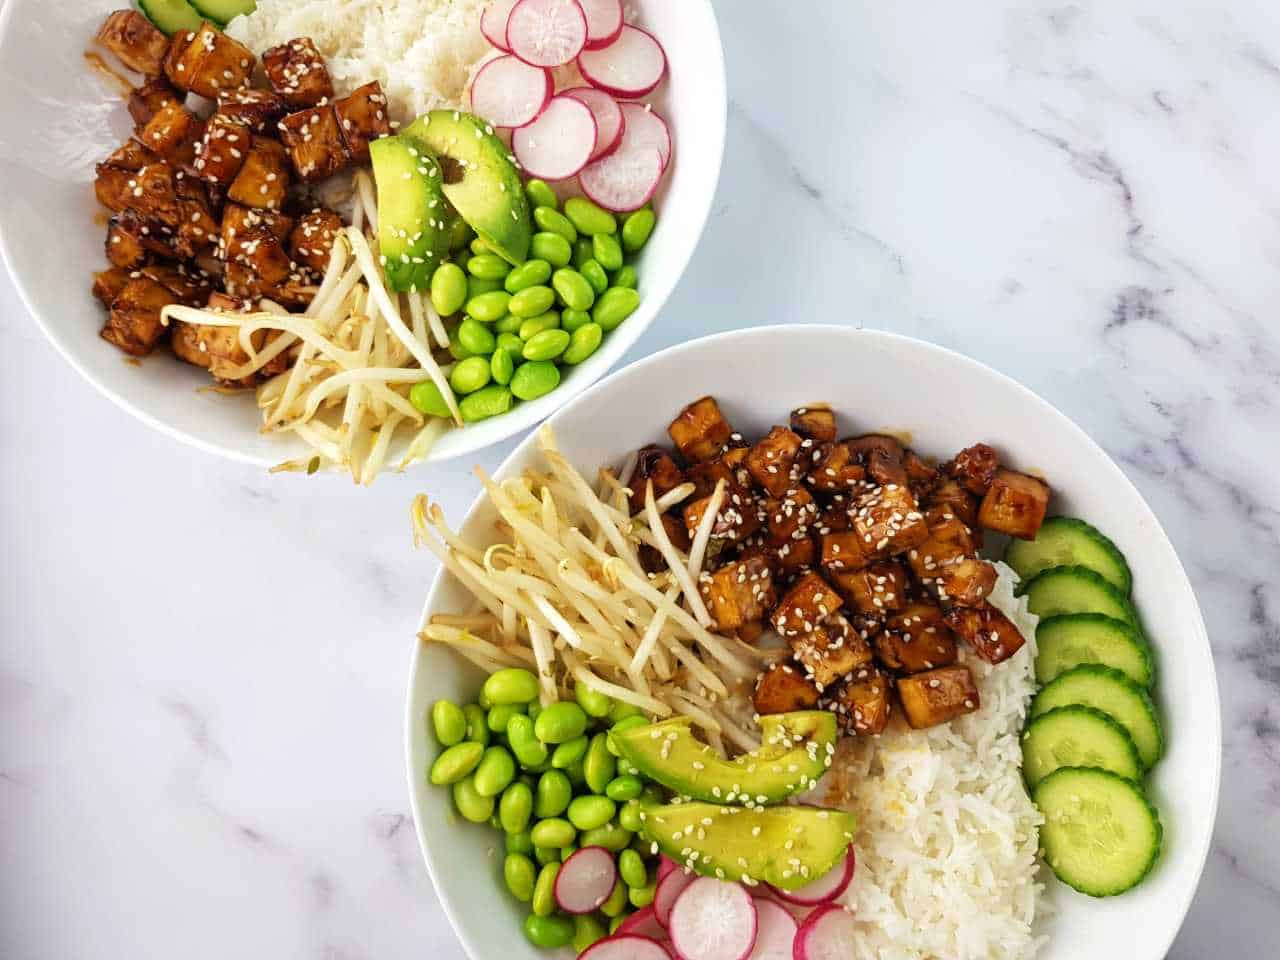 Teriyaki tofu in white bowls on a marble table.